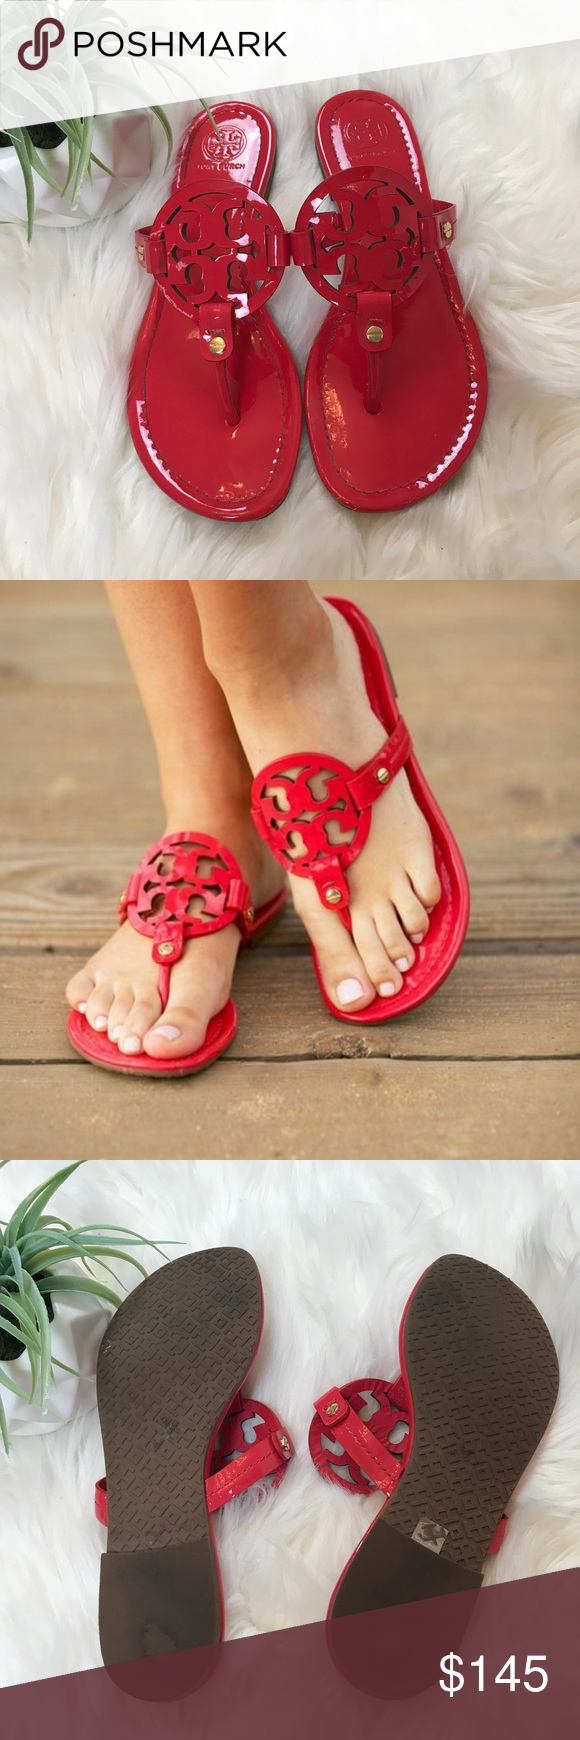 4524ee07b Tory Burch Red Patent Miller Sandals Size 7 Tory Burch Red patent leather  miller sandals size 7. Excellent condition. Open to offers and 30% off  bundles!